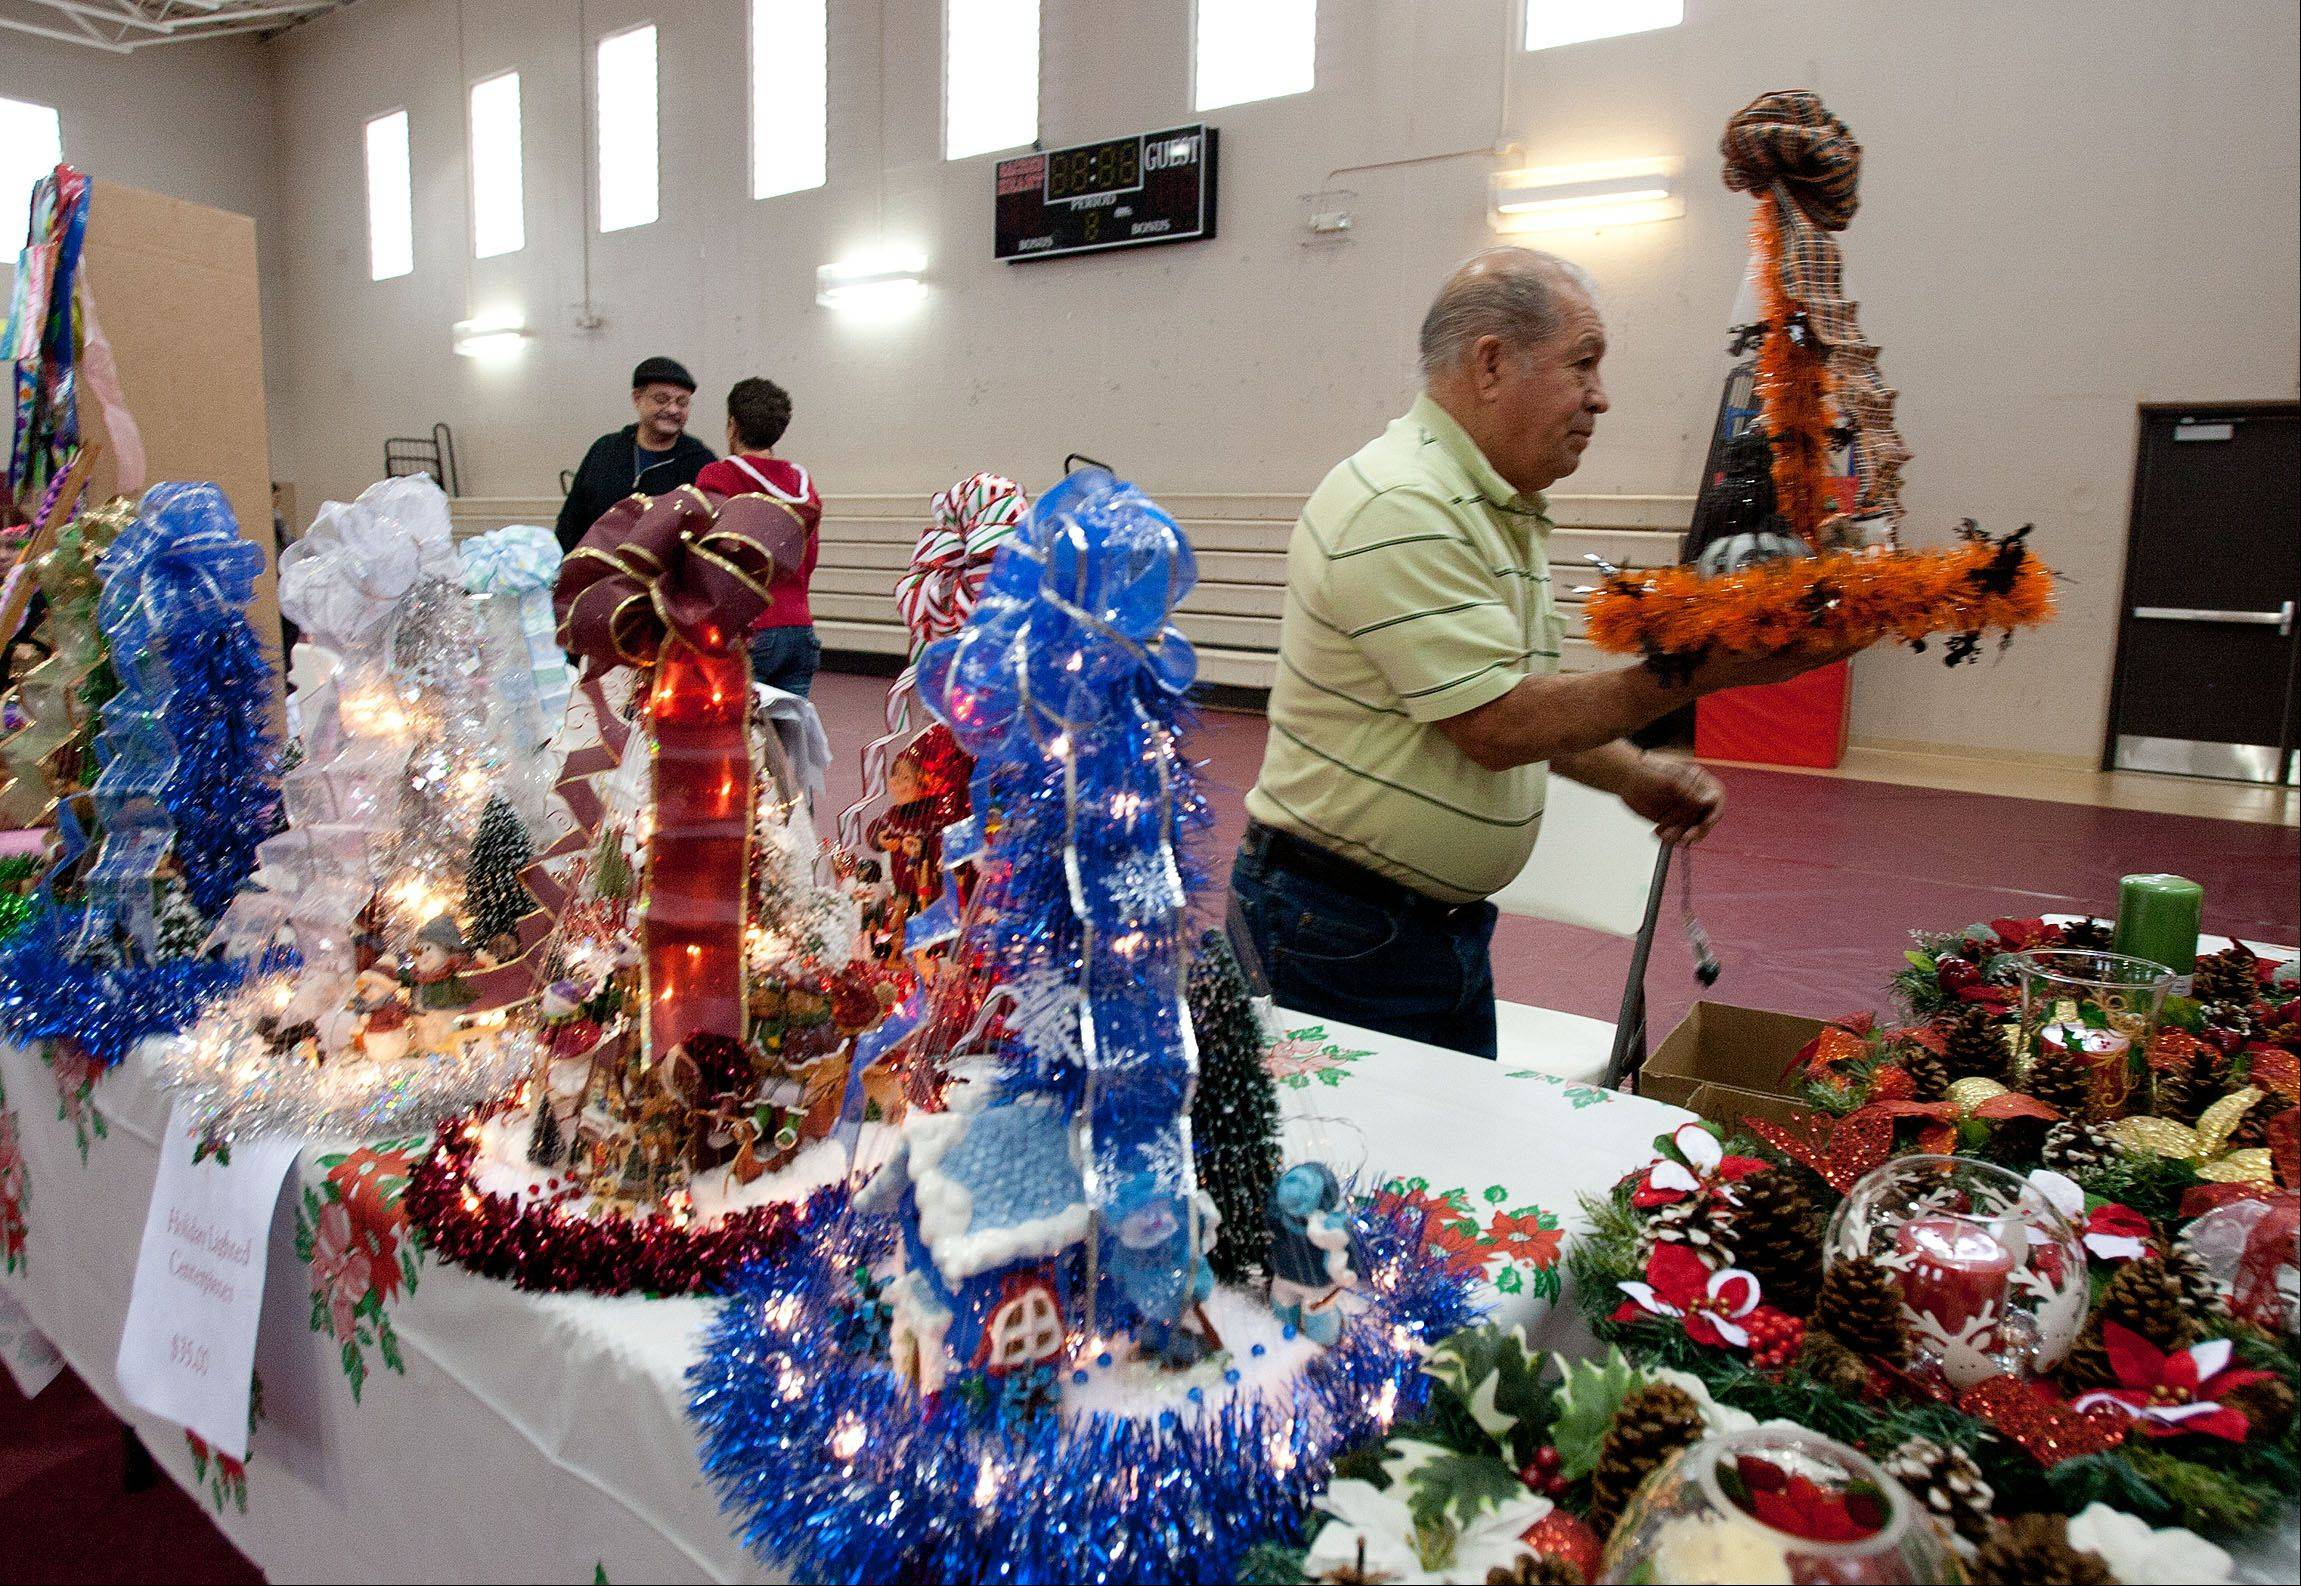 Manuel Guzman displays lighted holiday centerpieces Saturday during the annual Lombard Christmas Mart. Guzman's display was at Sacred Heart Church, one of several Lombard churches participating in the Christmas Mart.